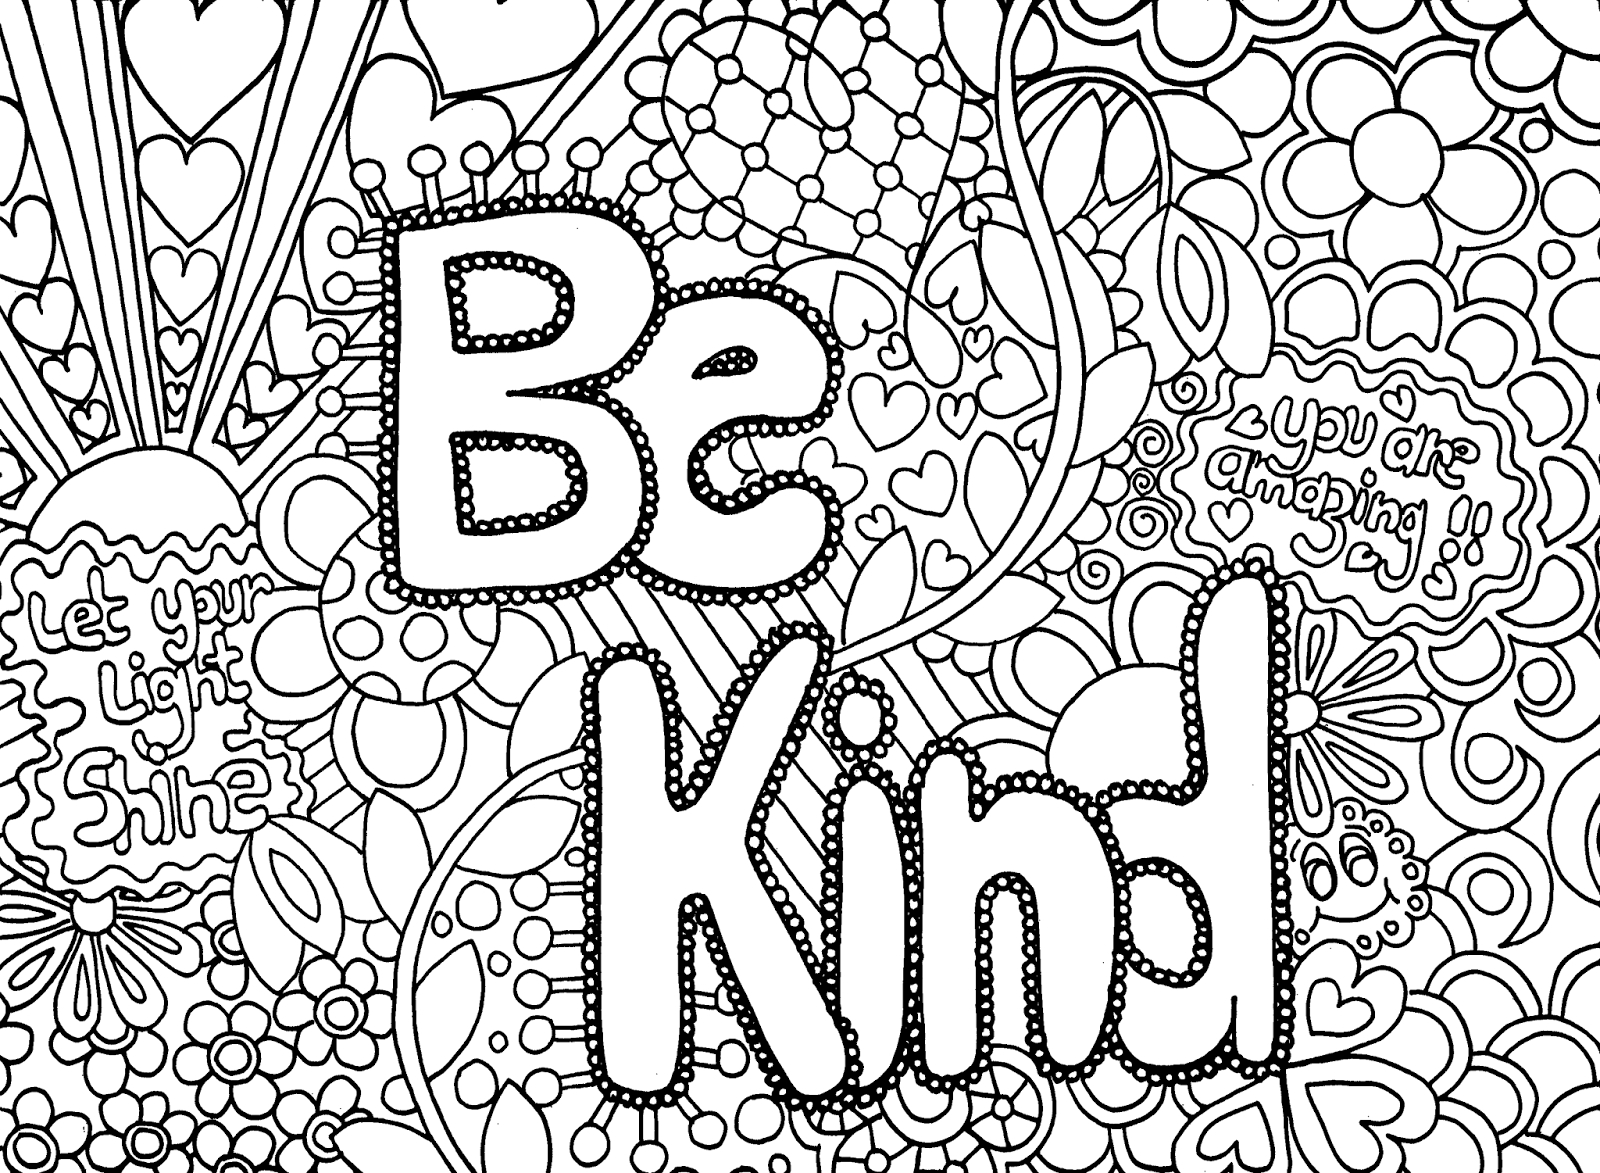 Difficult Hard Coloring Pages Printable | Only Coloring Pages - Free Printable Hard Coloring Pages For Adults